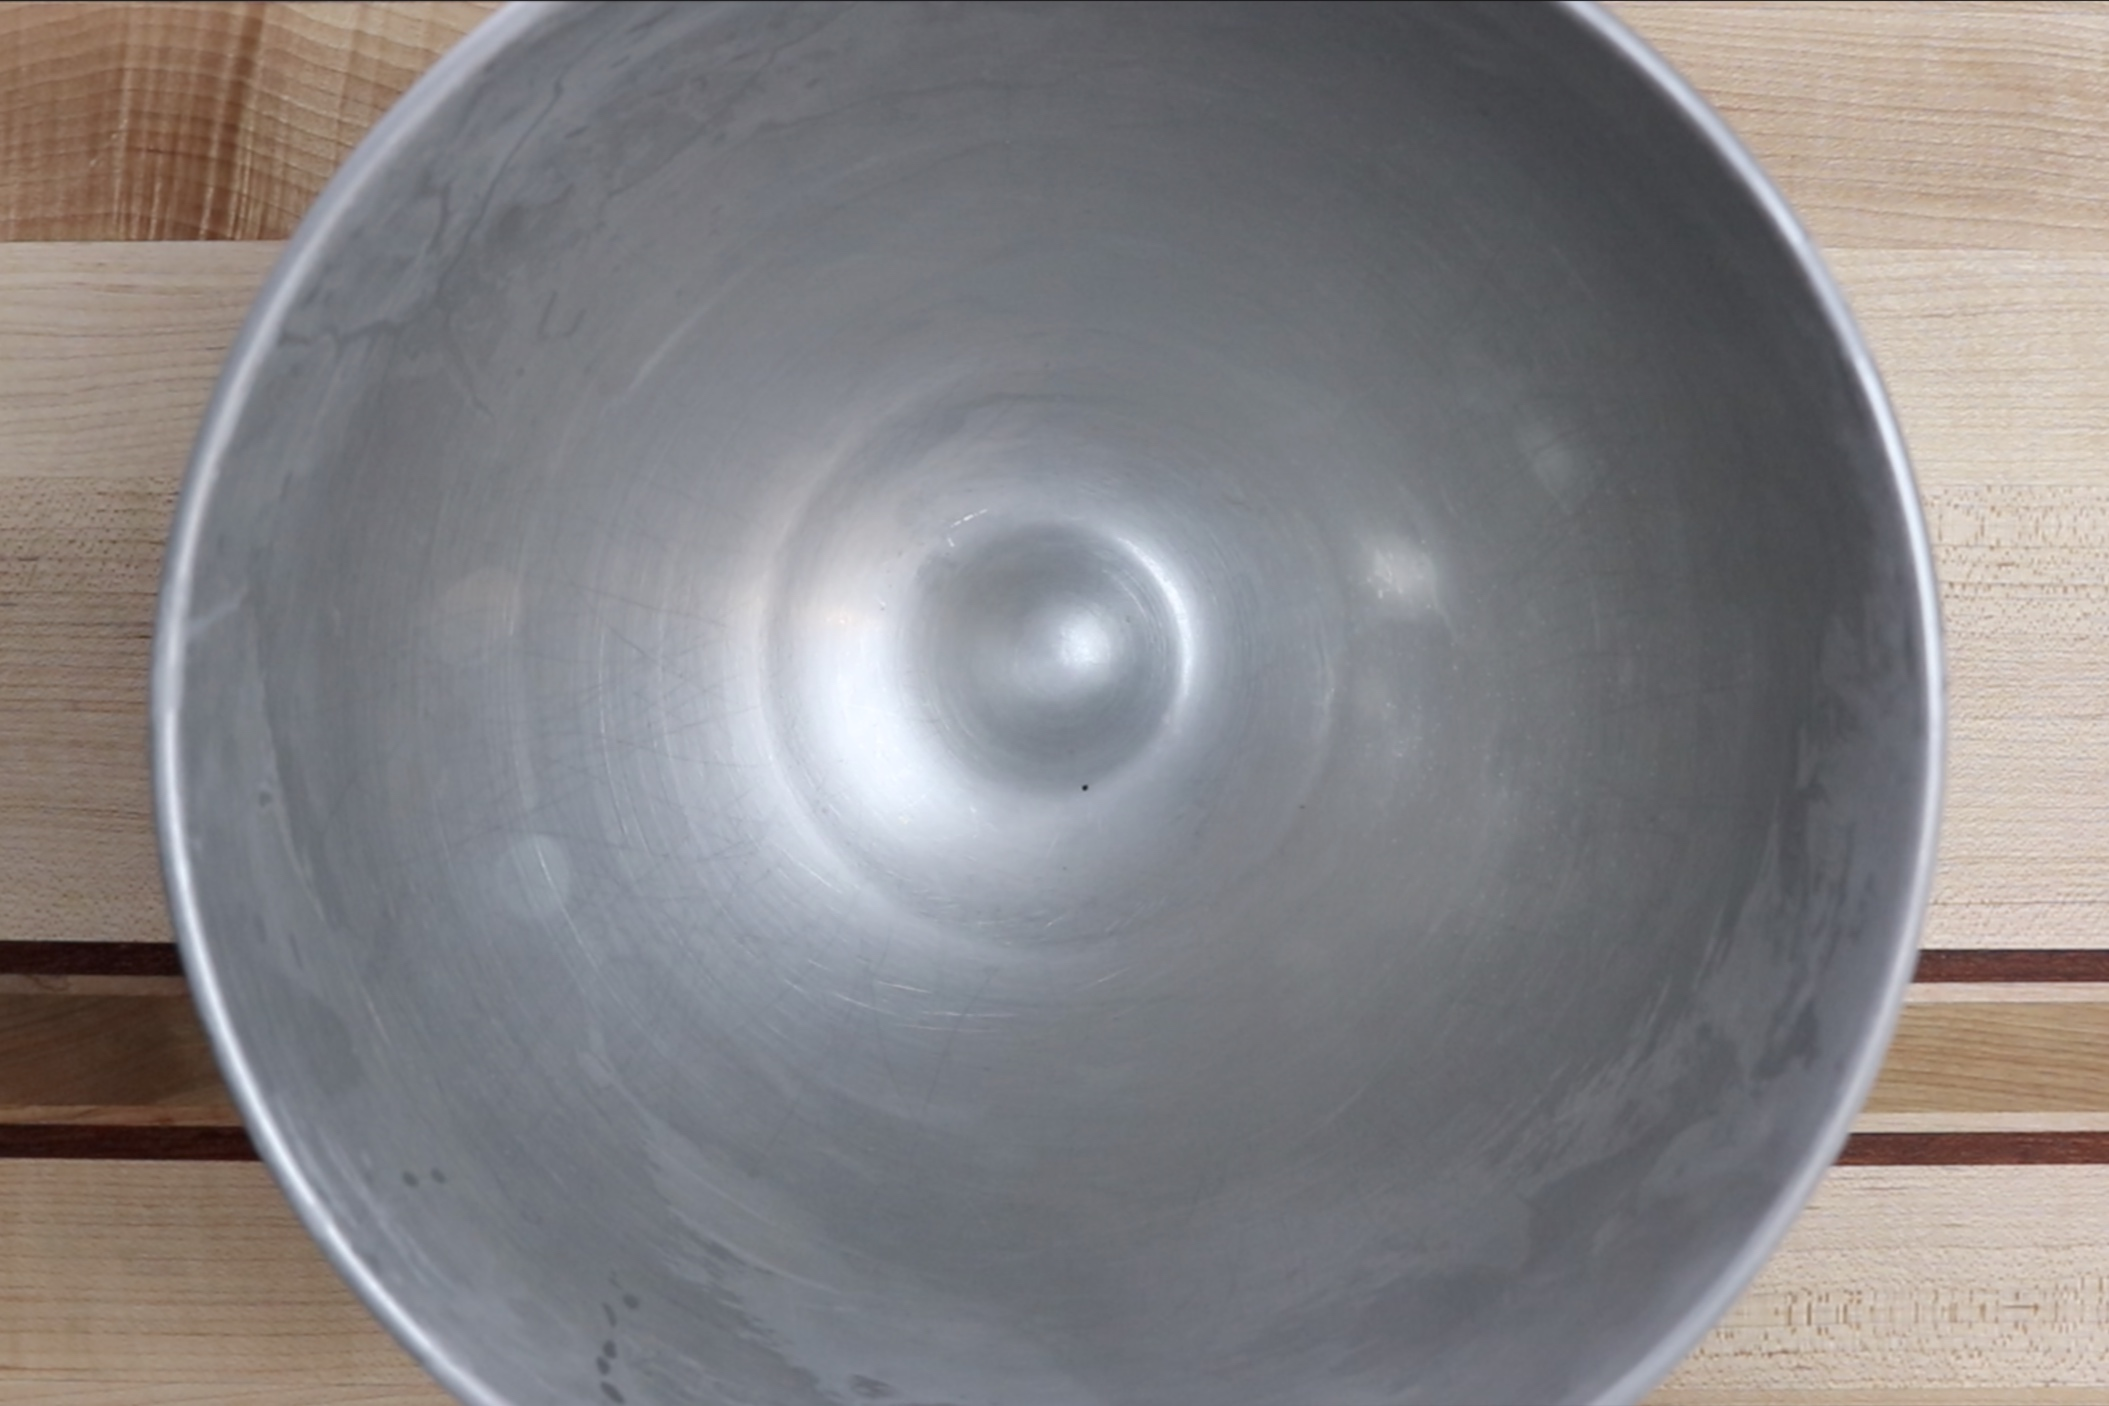 1. Place mixer bowl in freezer for at least 20 minutes to chill. -